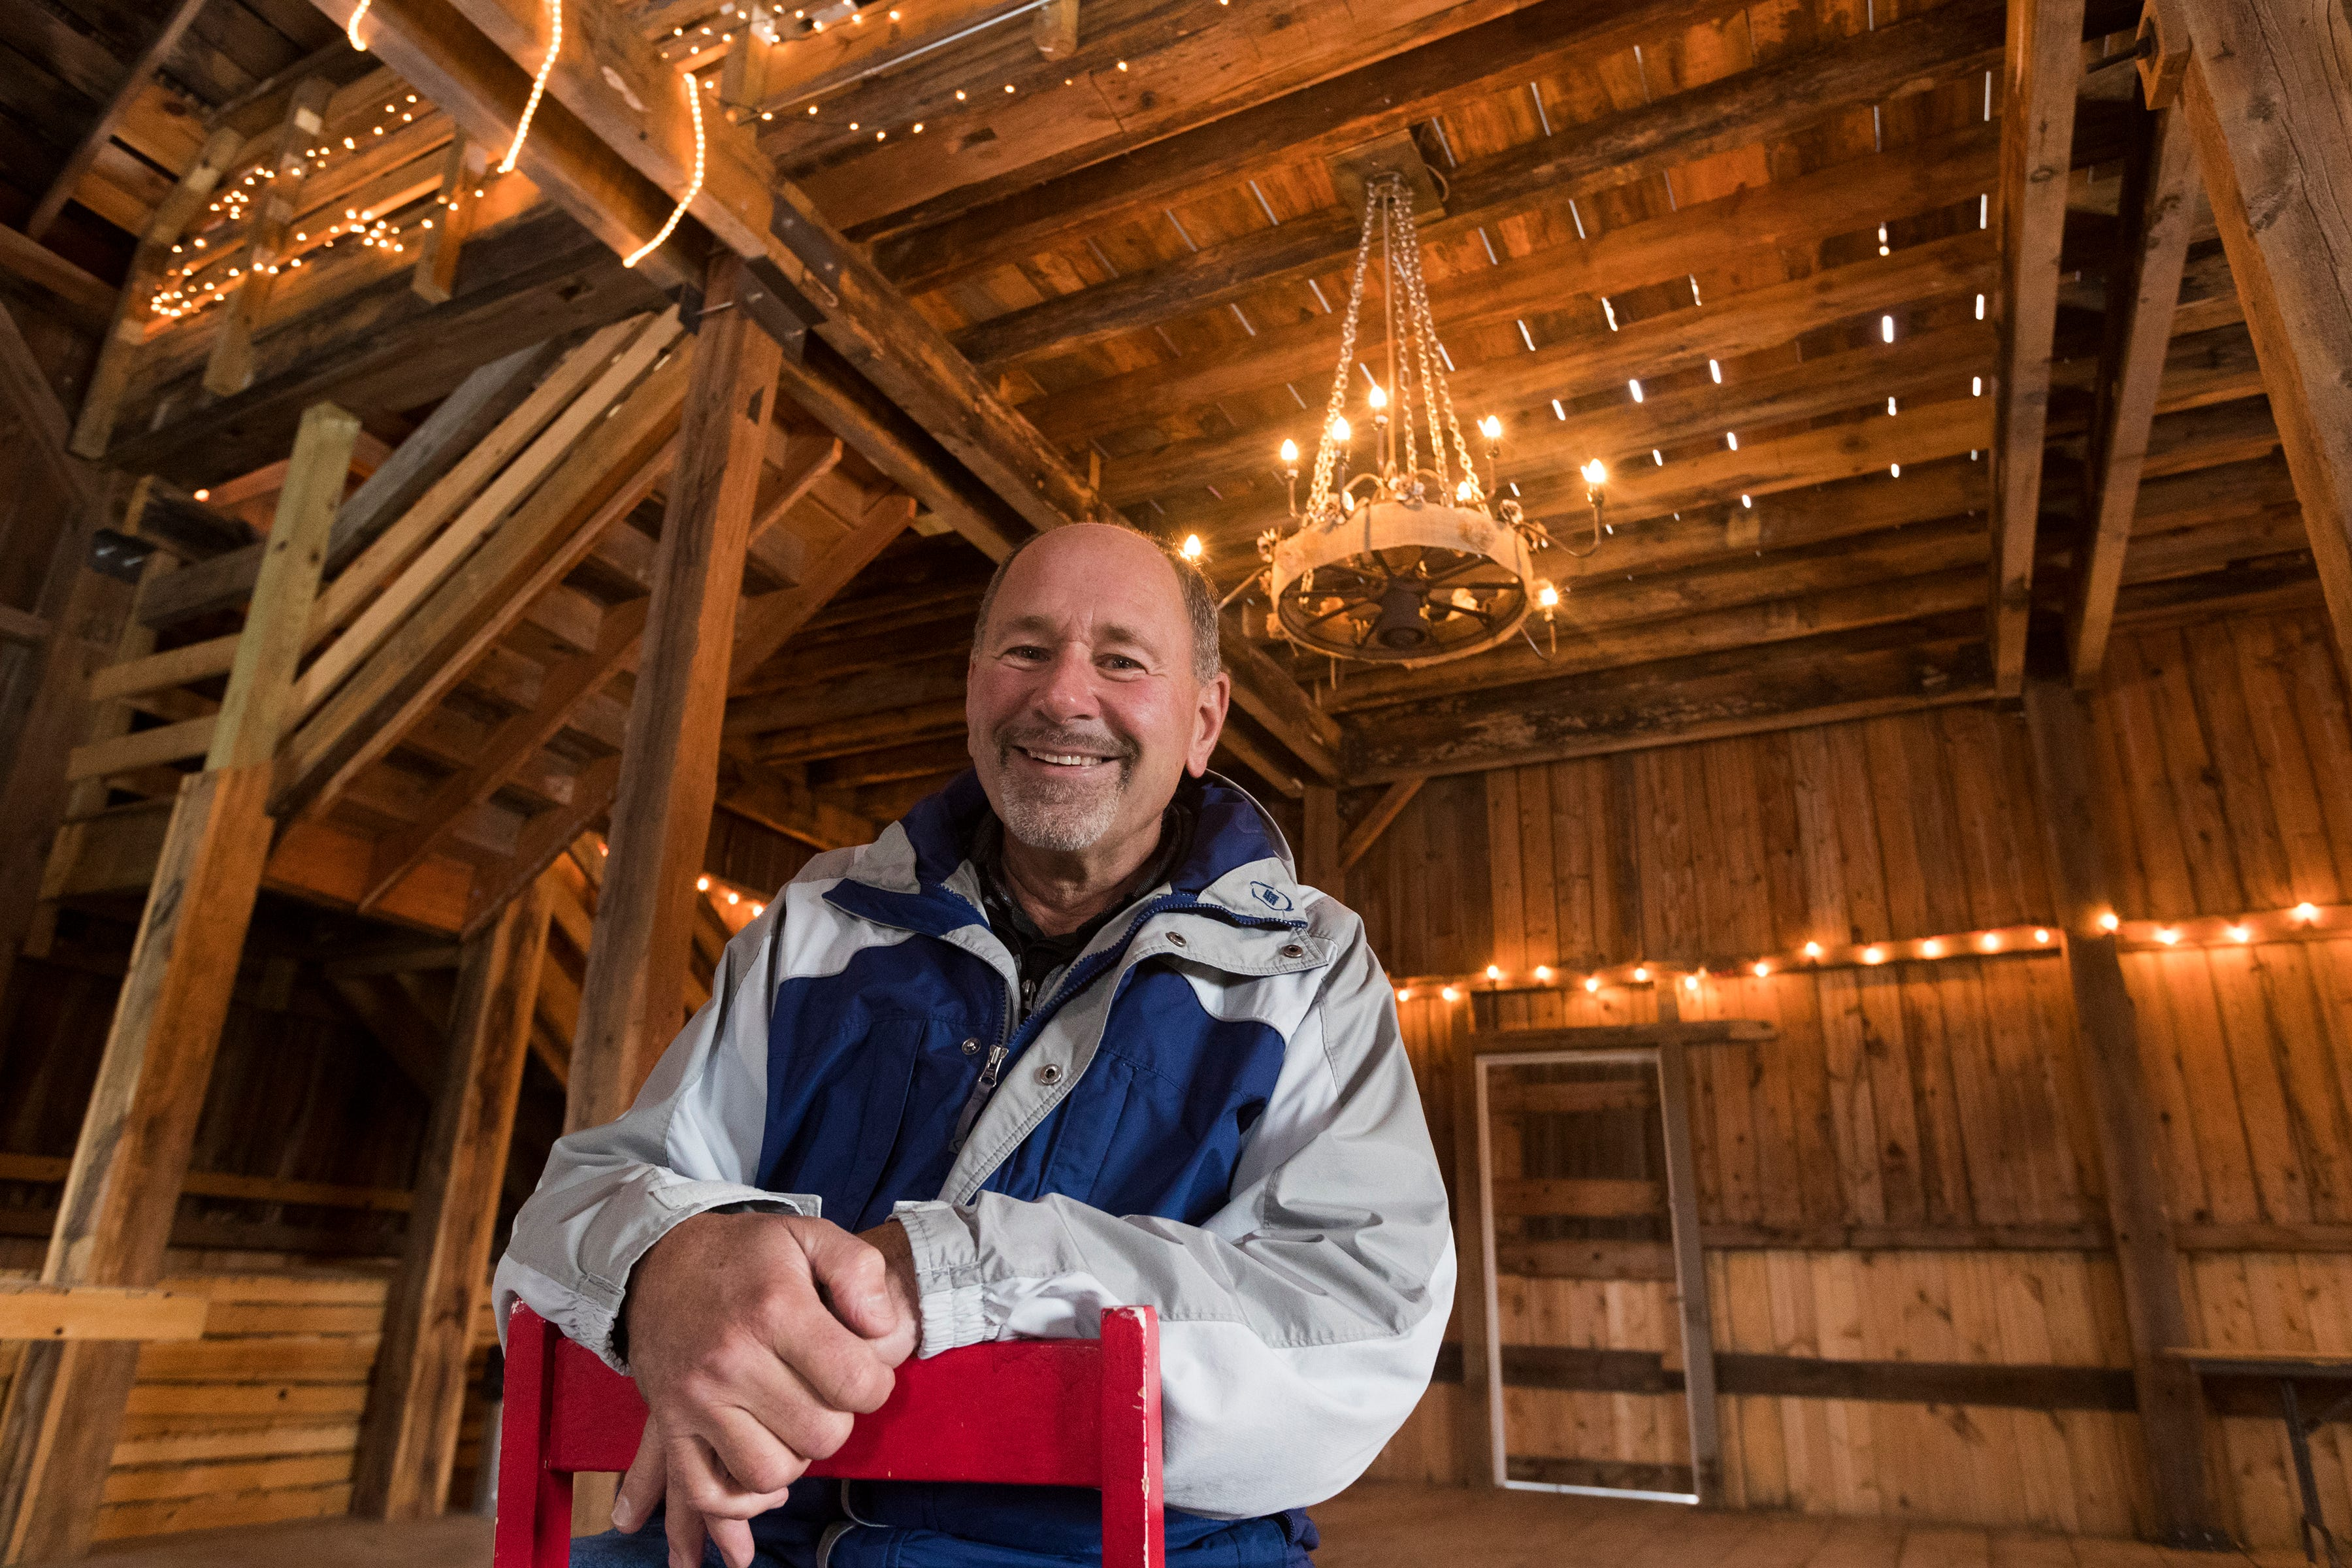 Former dairy farmer Greg Zwald inside of the renovated barn he uses as an event space at his White Pine Berry Farm outside River Falls.